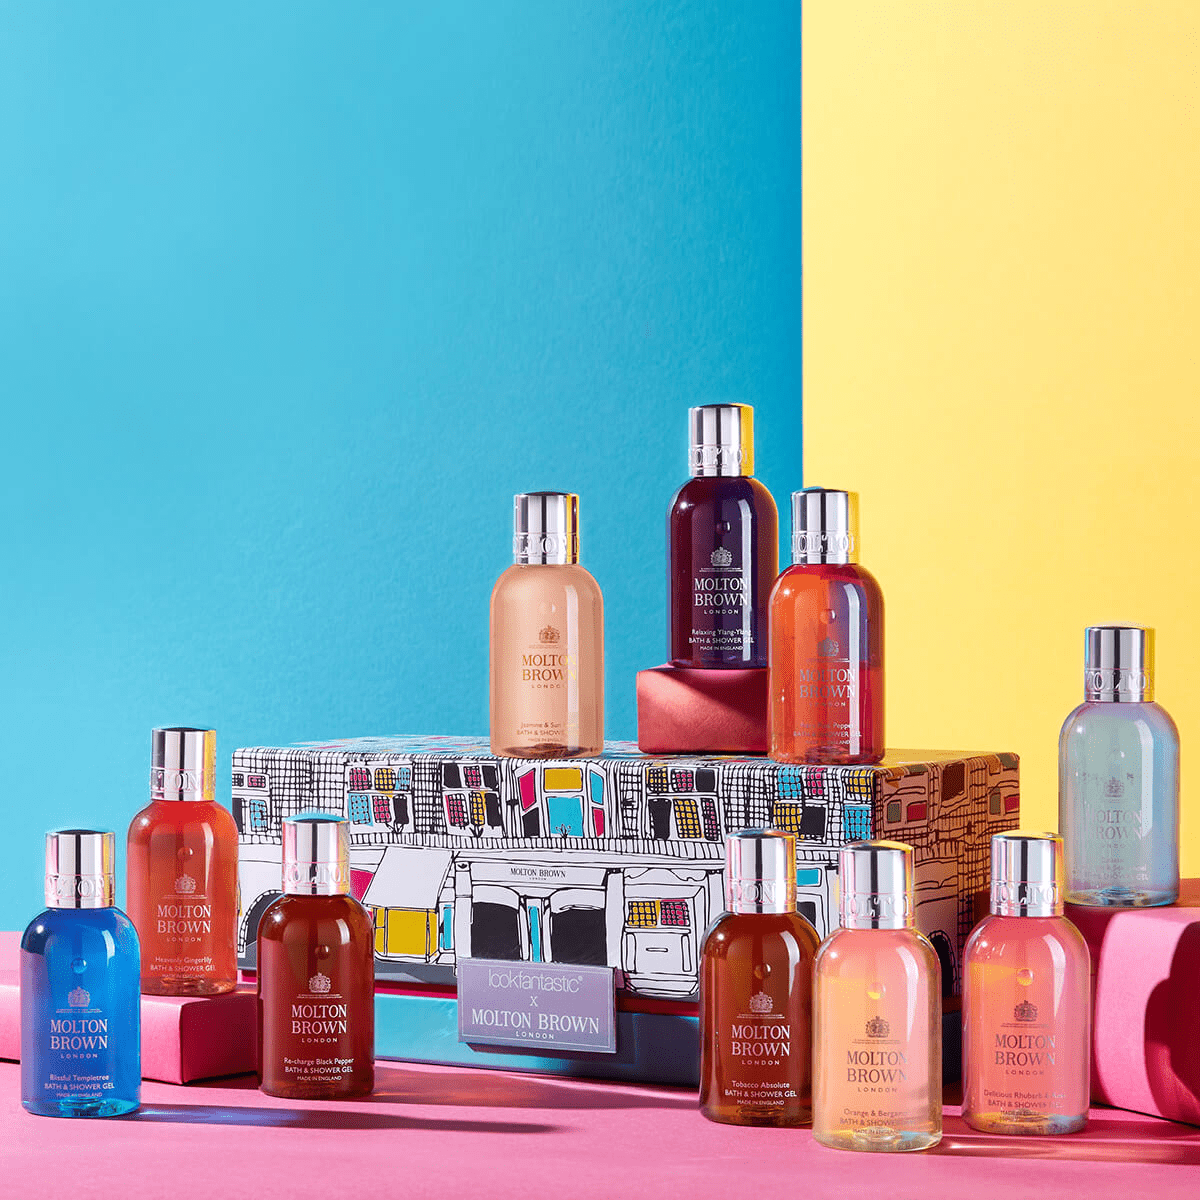 Lookfantastic x Molton Brown Limited Edition Beauty Box Available Now + Full Spoilers & Coupon!